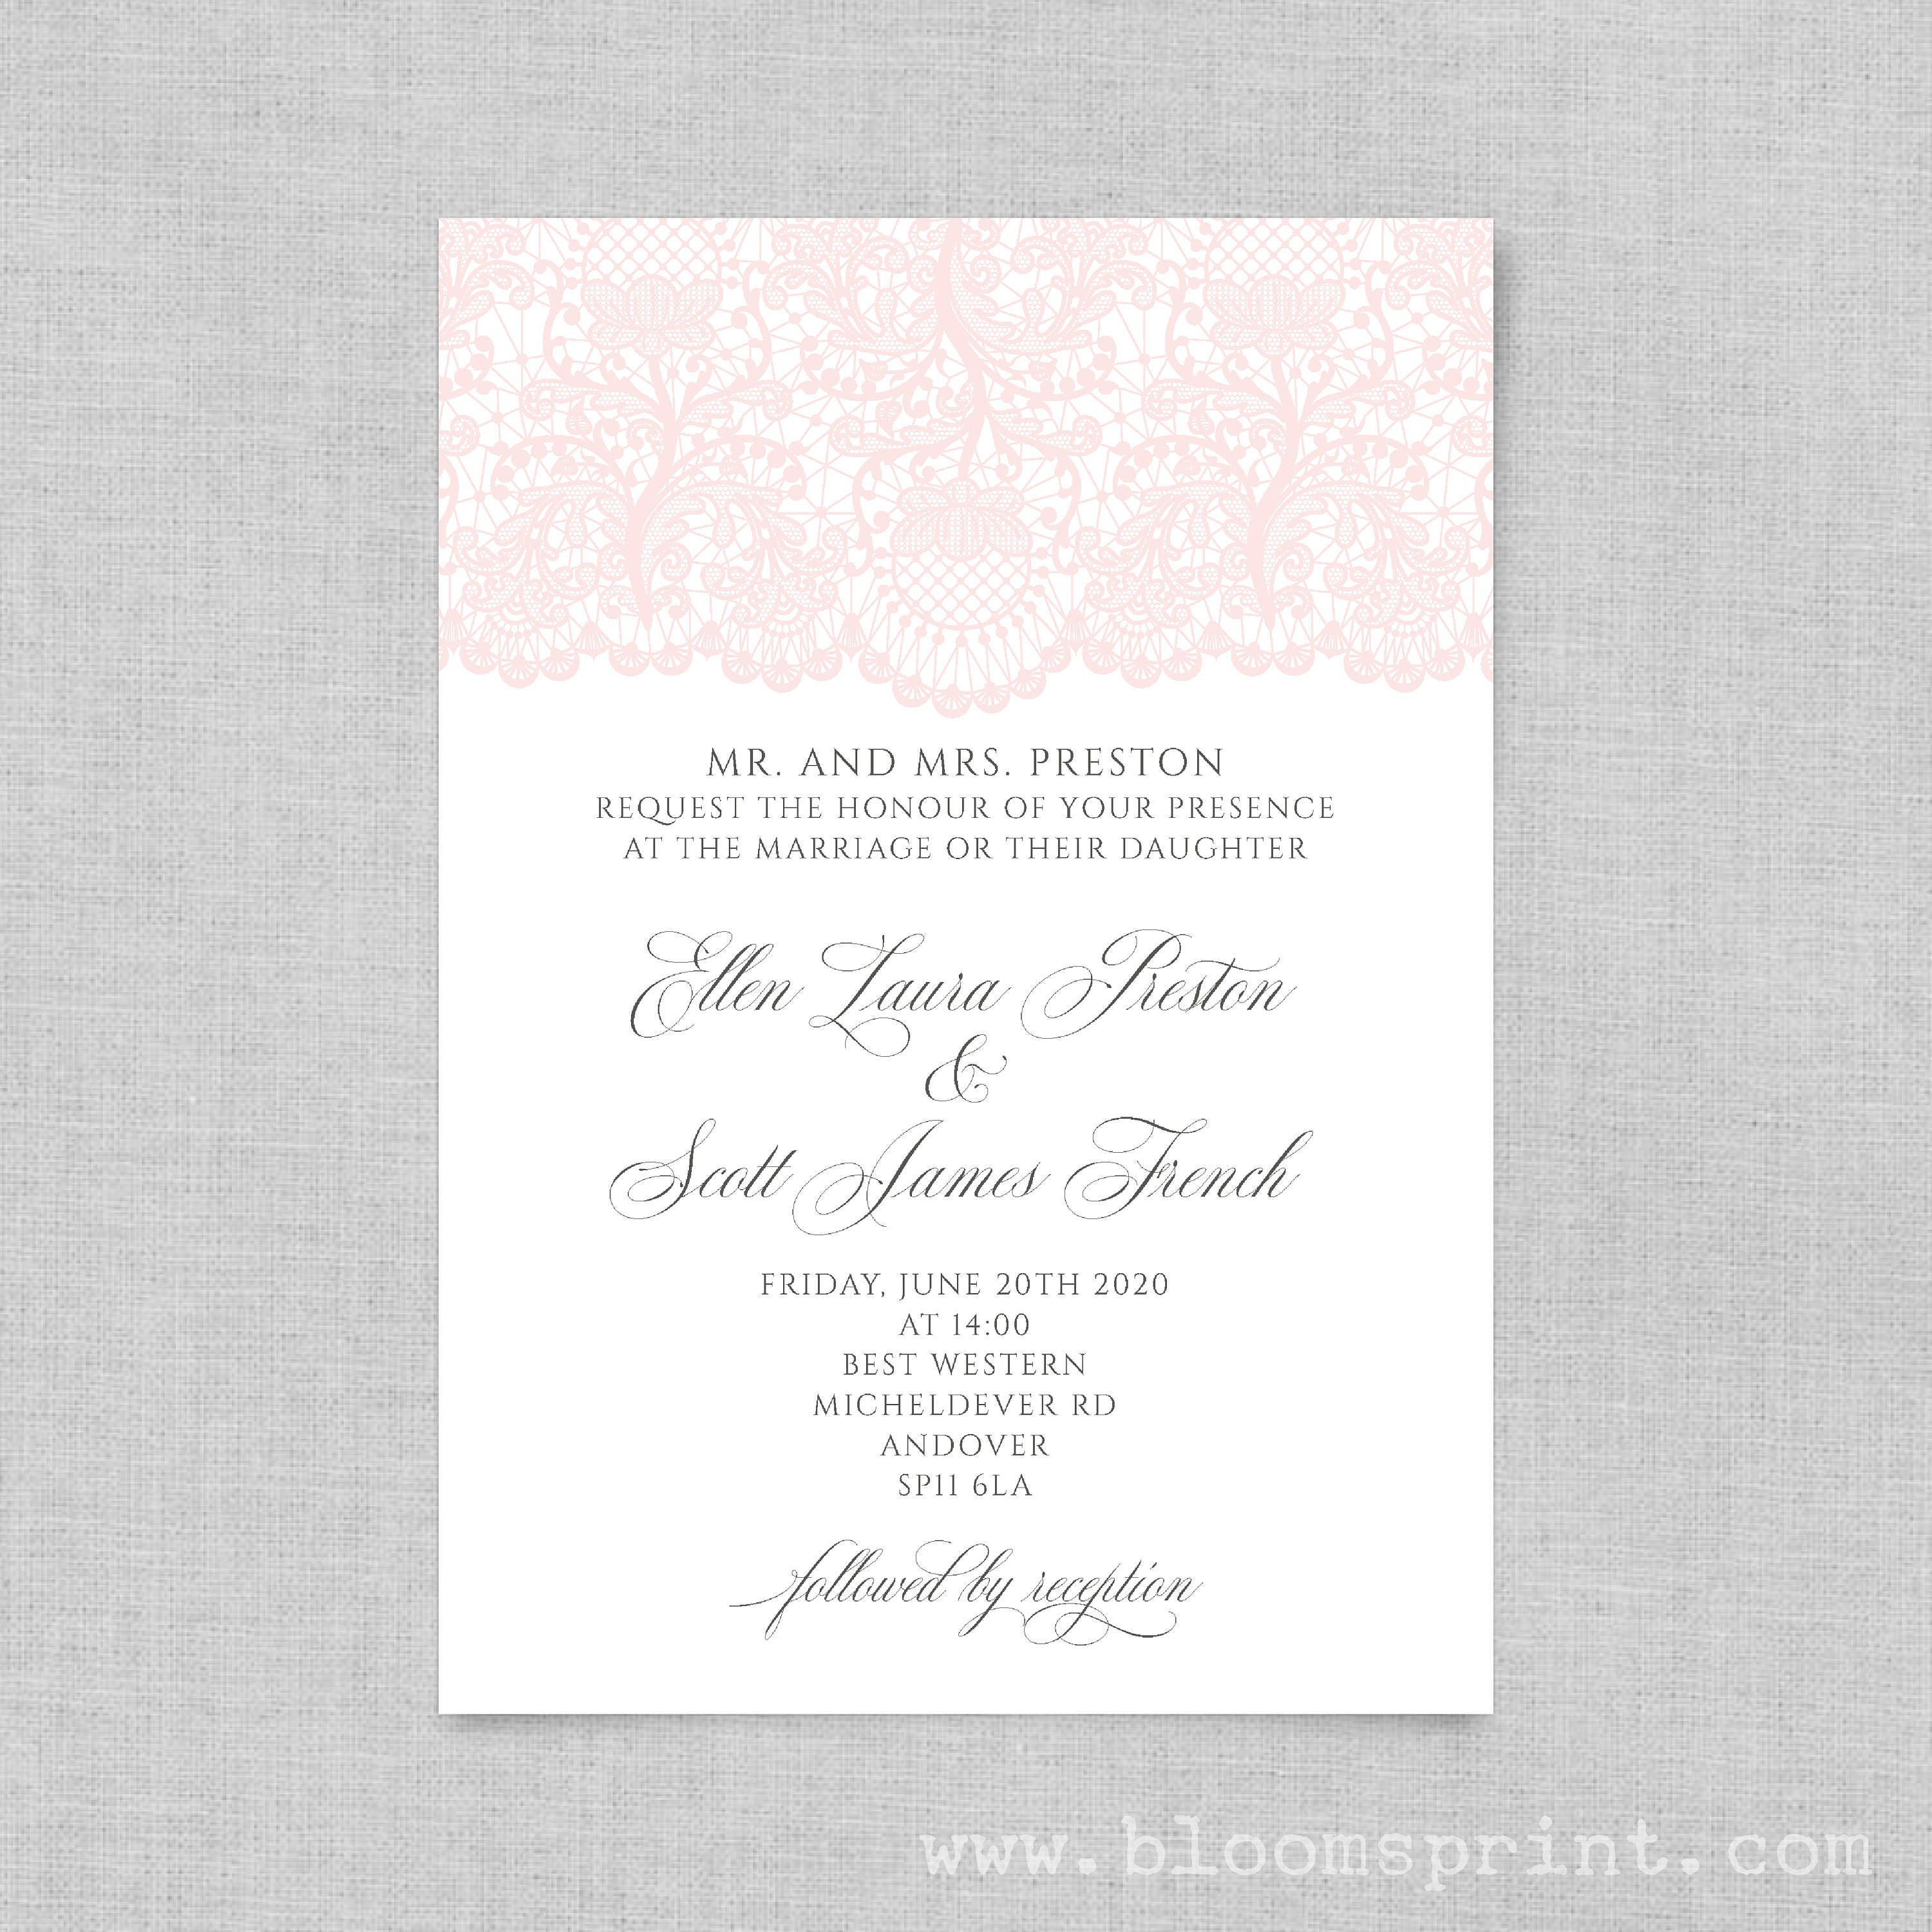 Wedding invitation printable, Simple wedding invitation, Wedding ...